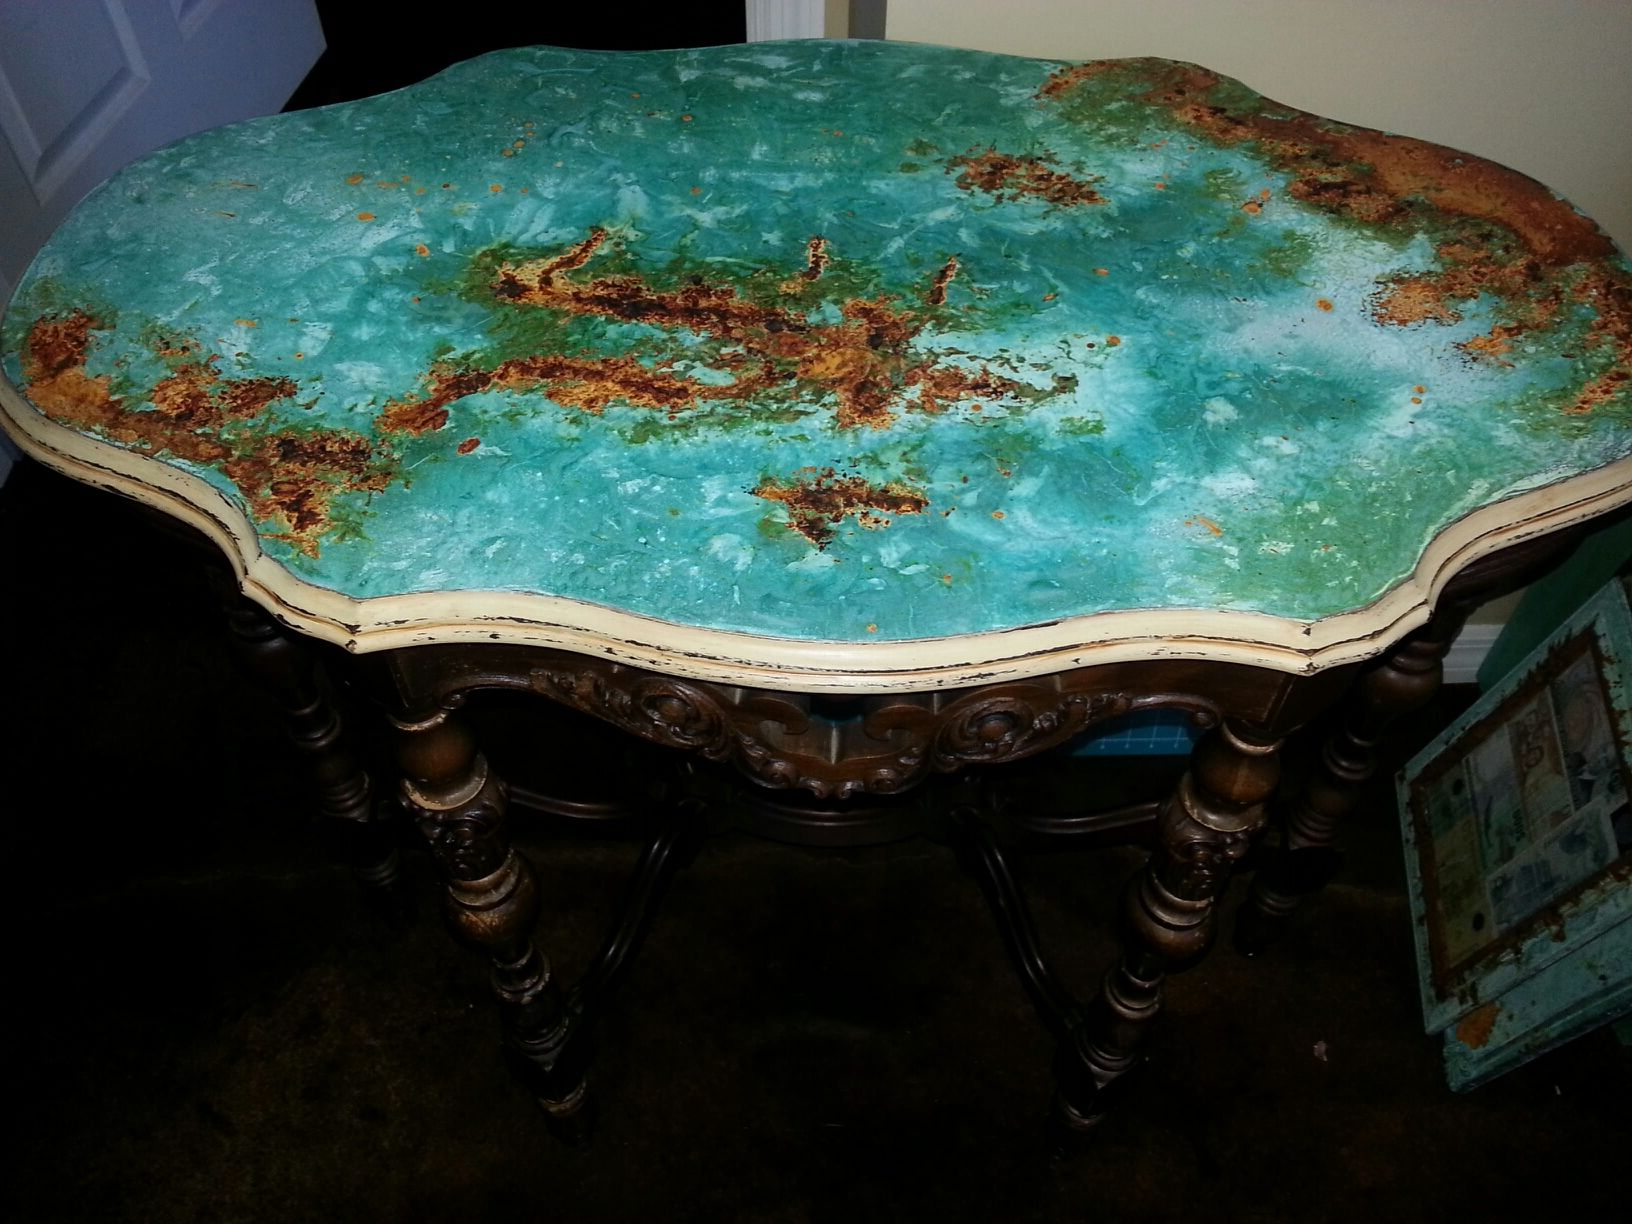 Copper/ Rust Patina Table Top With Modern Master Metal Effects Inside Mix Patina Metal Frame Console Tables (View 15 of 20)